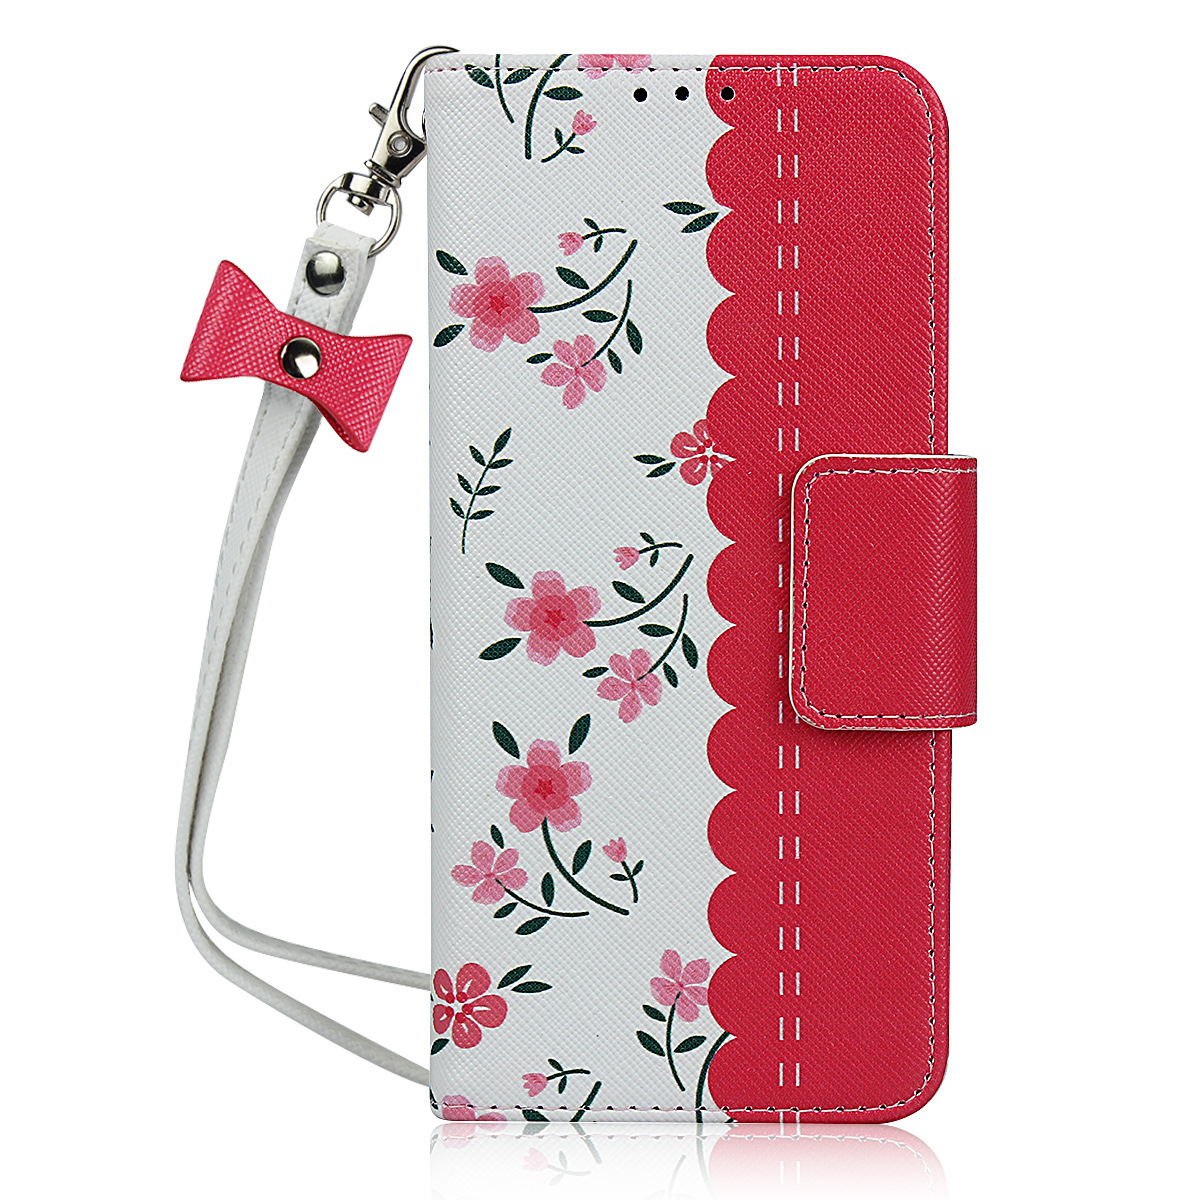 Leather Wallet Phone Case for <font><b>Samsung</b></font> Galaxy <font><b>S10</b></font> S9 S8 Note10 A50 Flower <font><b>Flip</b></font> <font><b>Cover</b></font> popsocket for mobile phones image